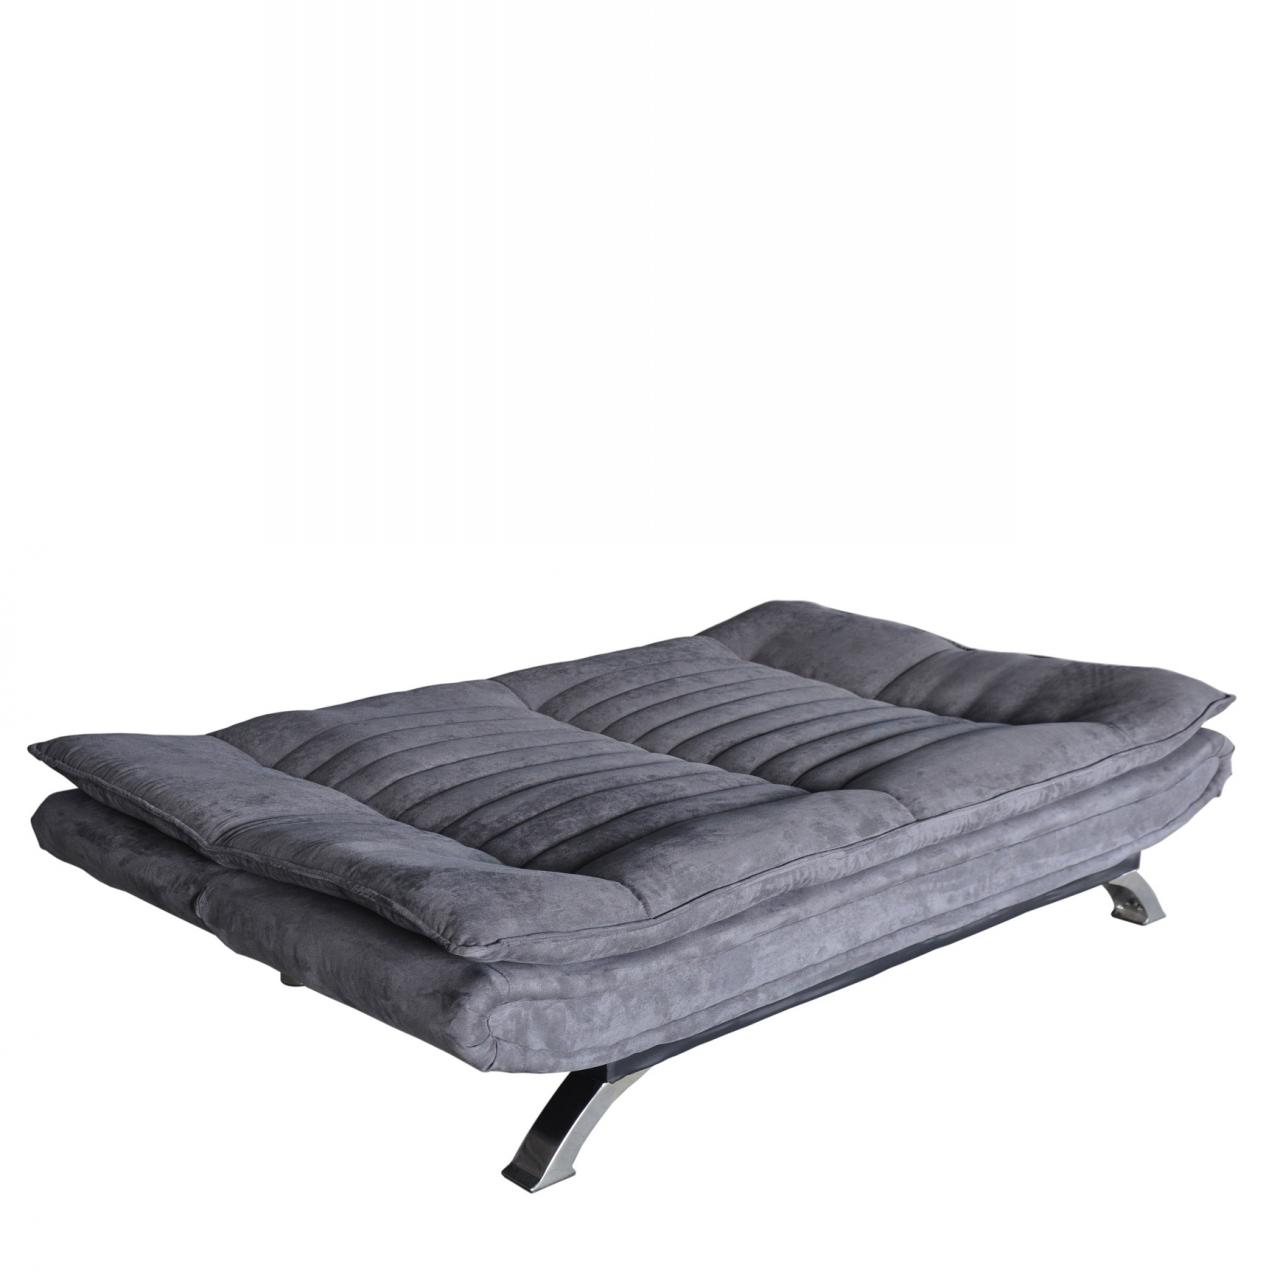 Schlafsofas Online Bestellen Schlafsofas Online Kaufen Gallery Of Copperfield Sofa Fashion For